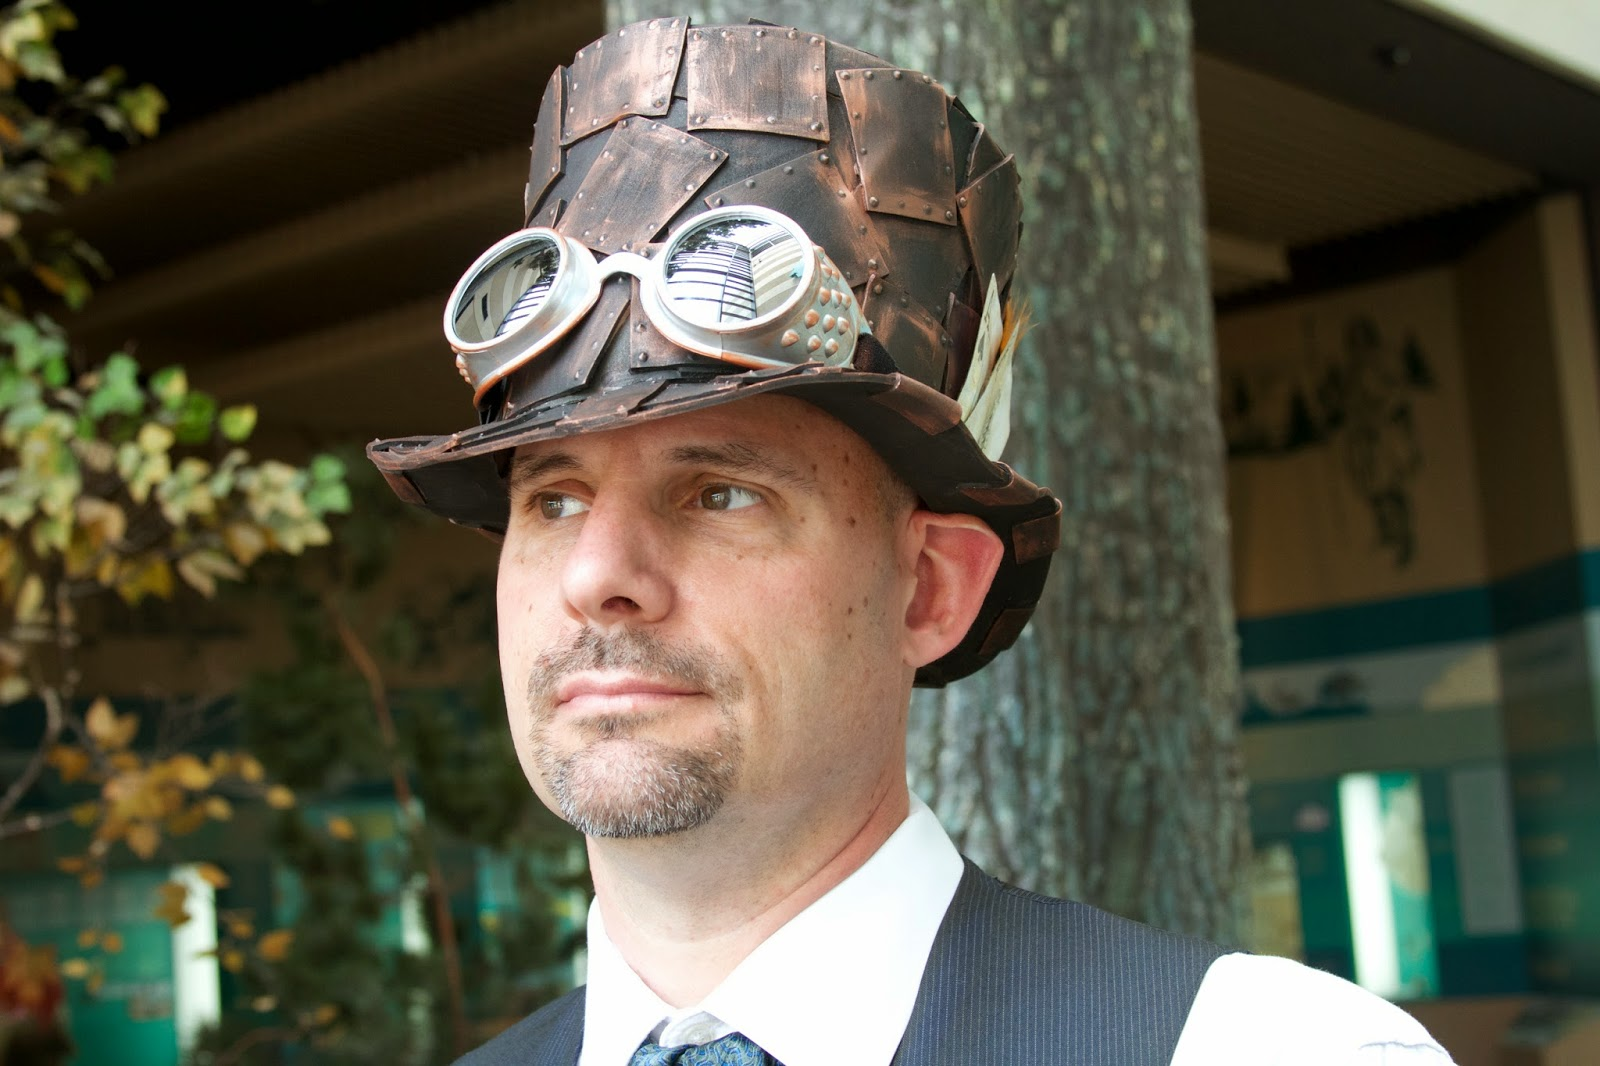 Steampunk costume details. Photos by Tammy Sue Allen Photography.